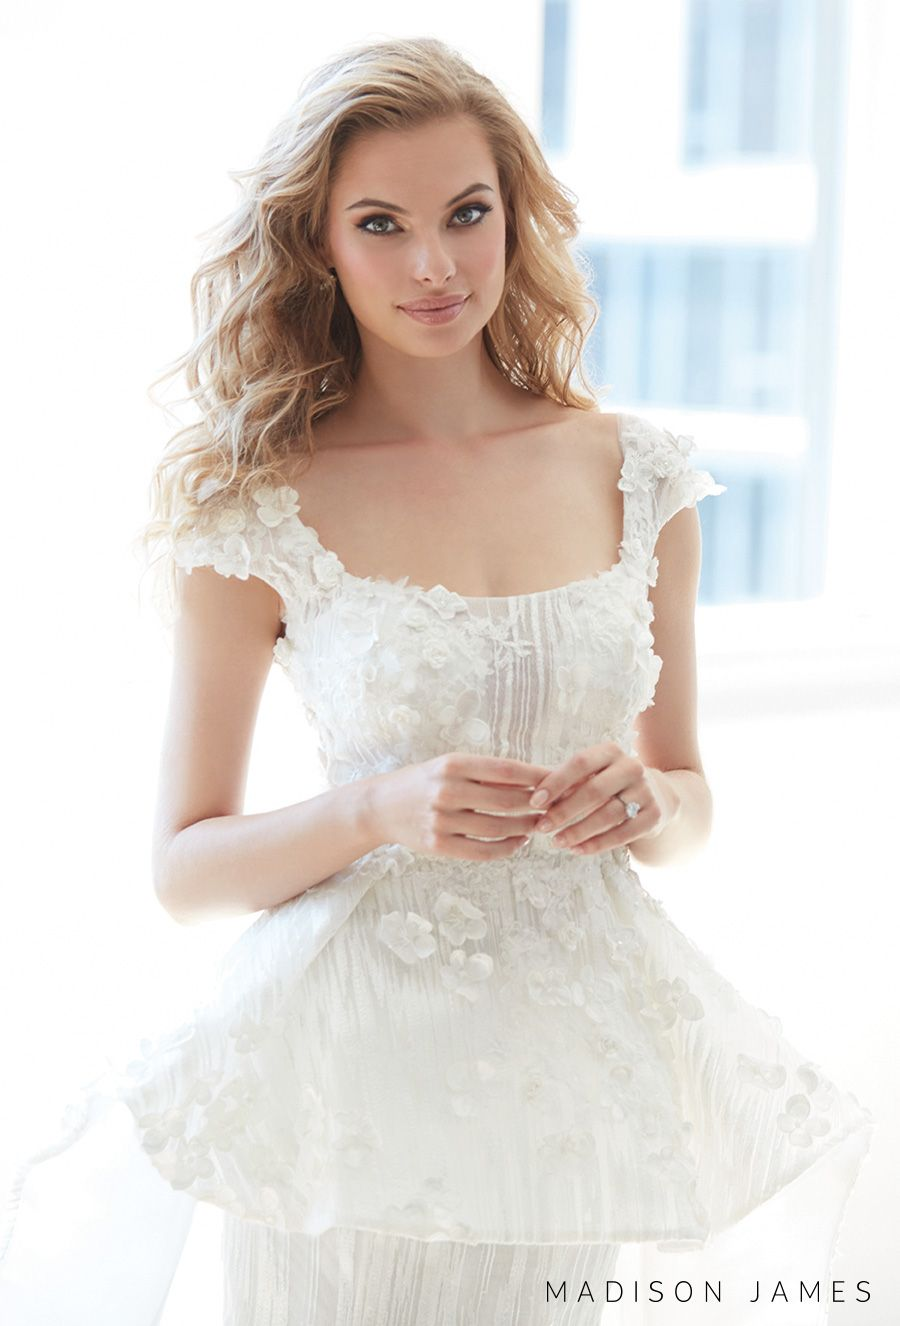 Madison james spring wedding dresses u fall in love with this